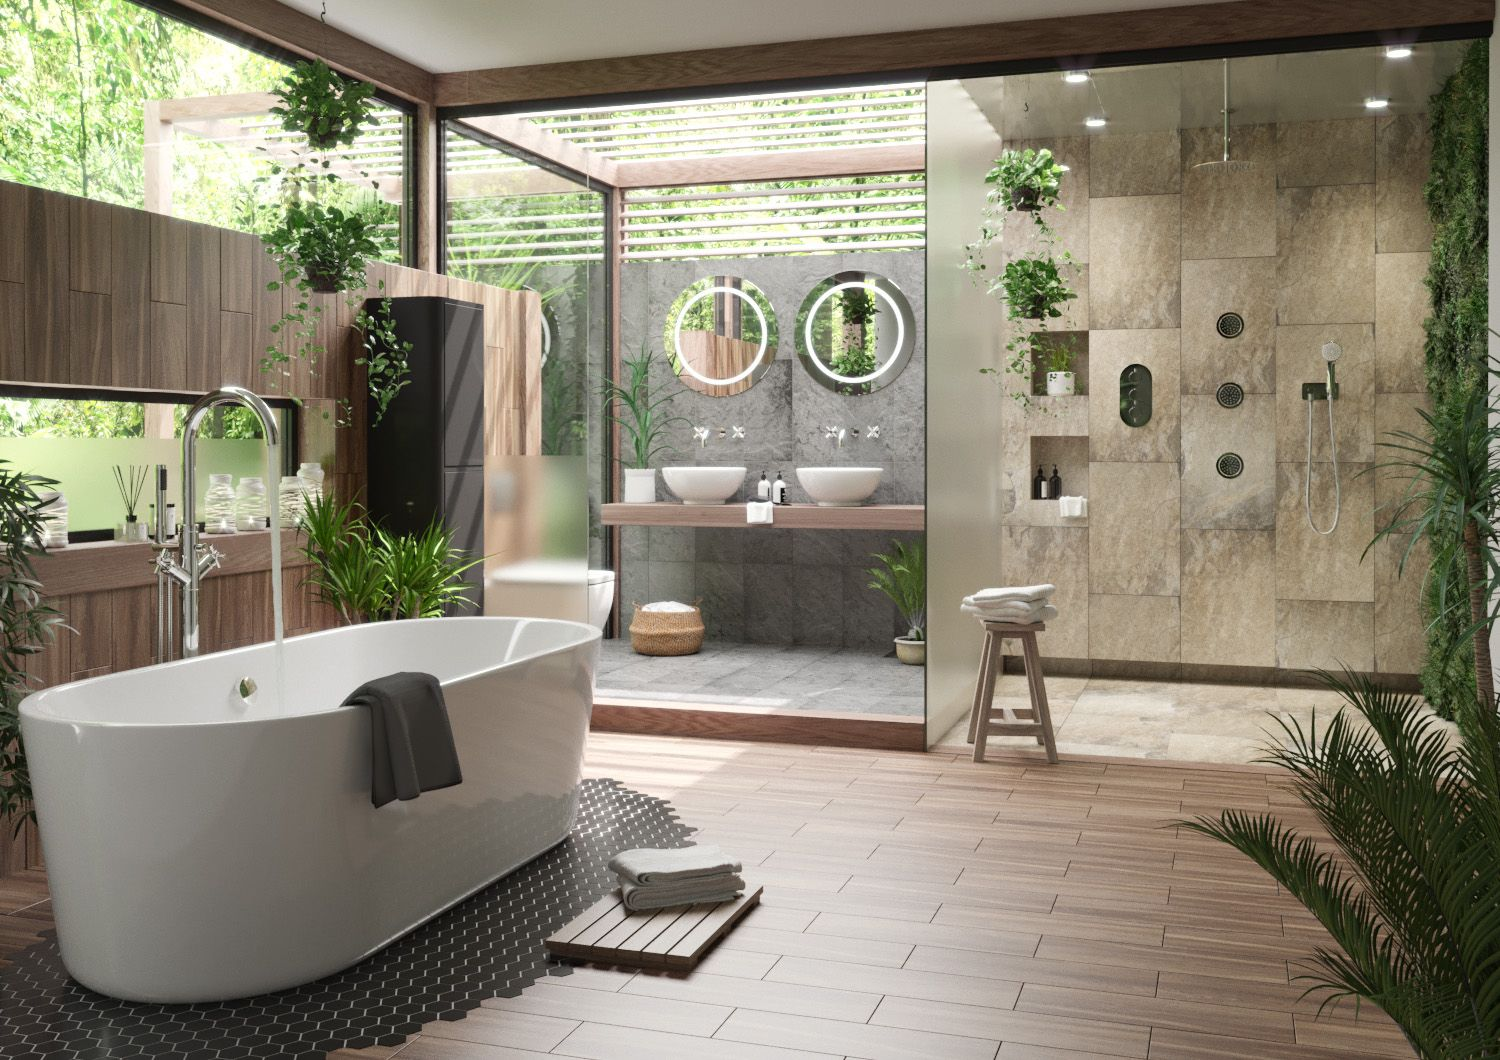 25 Tropical Bathroom Design Ideas - Decoration Love